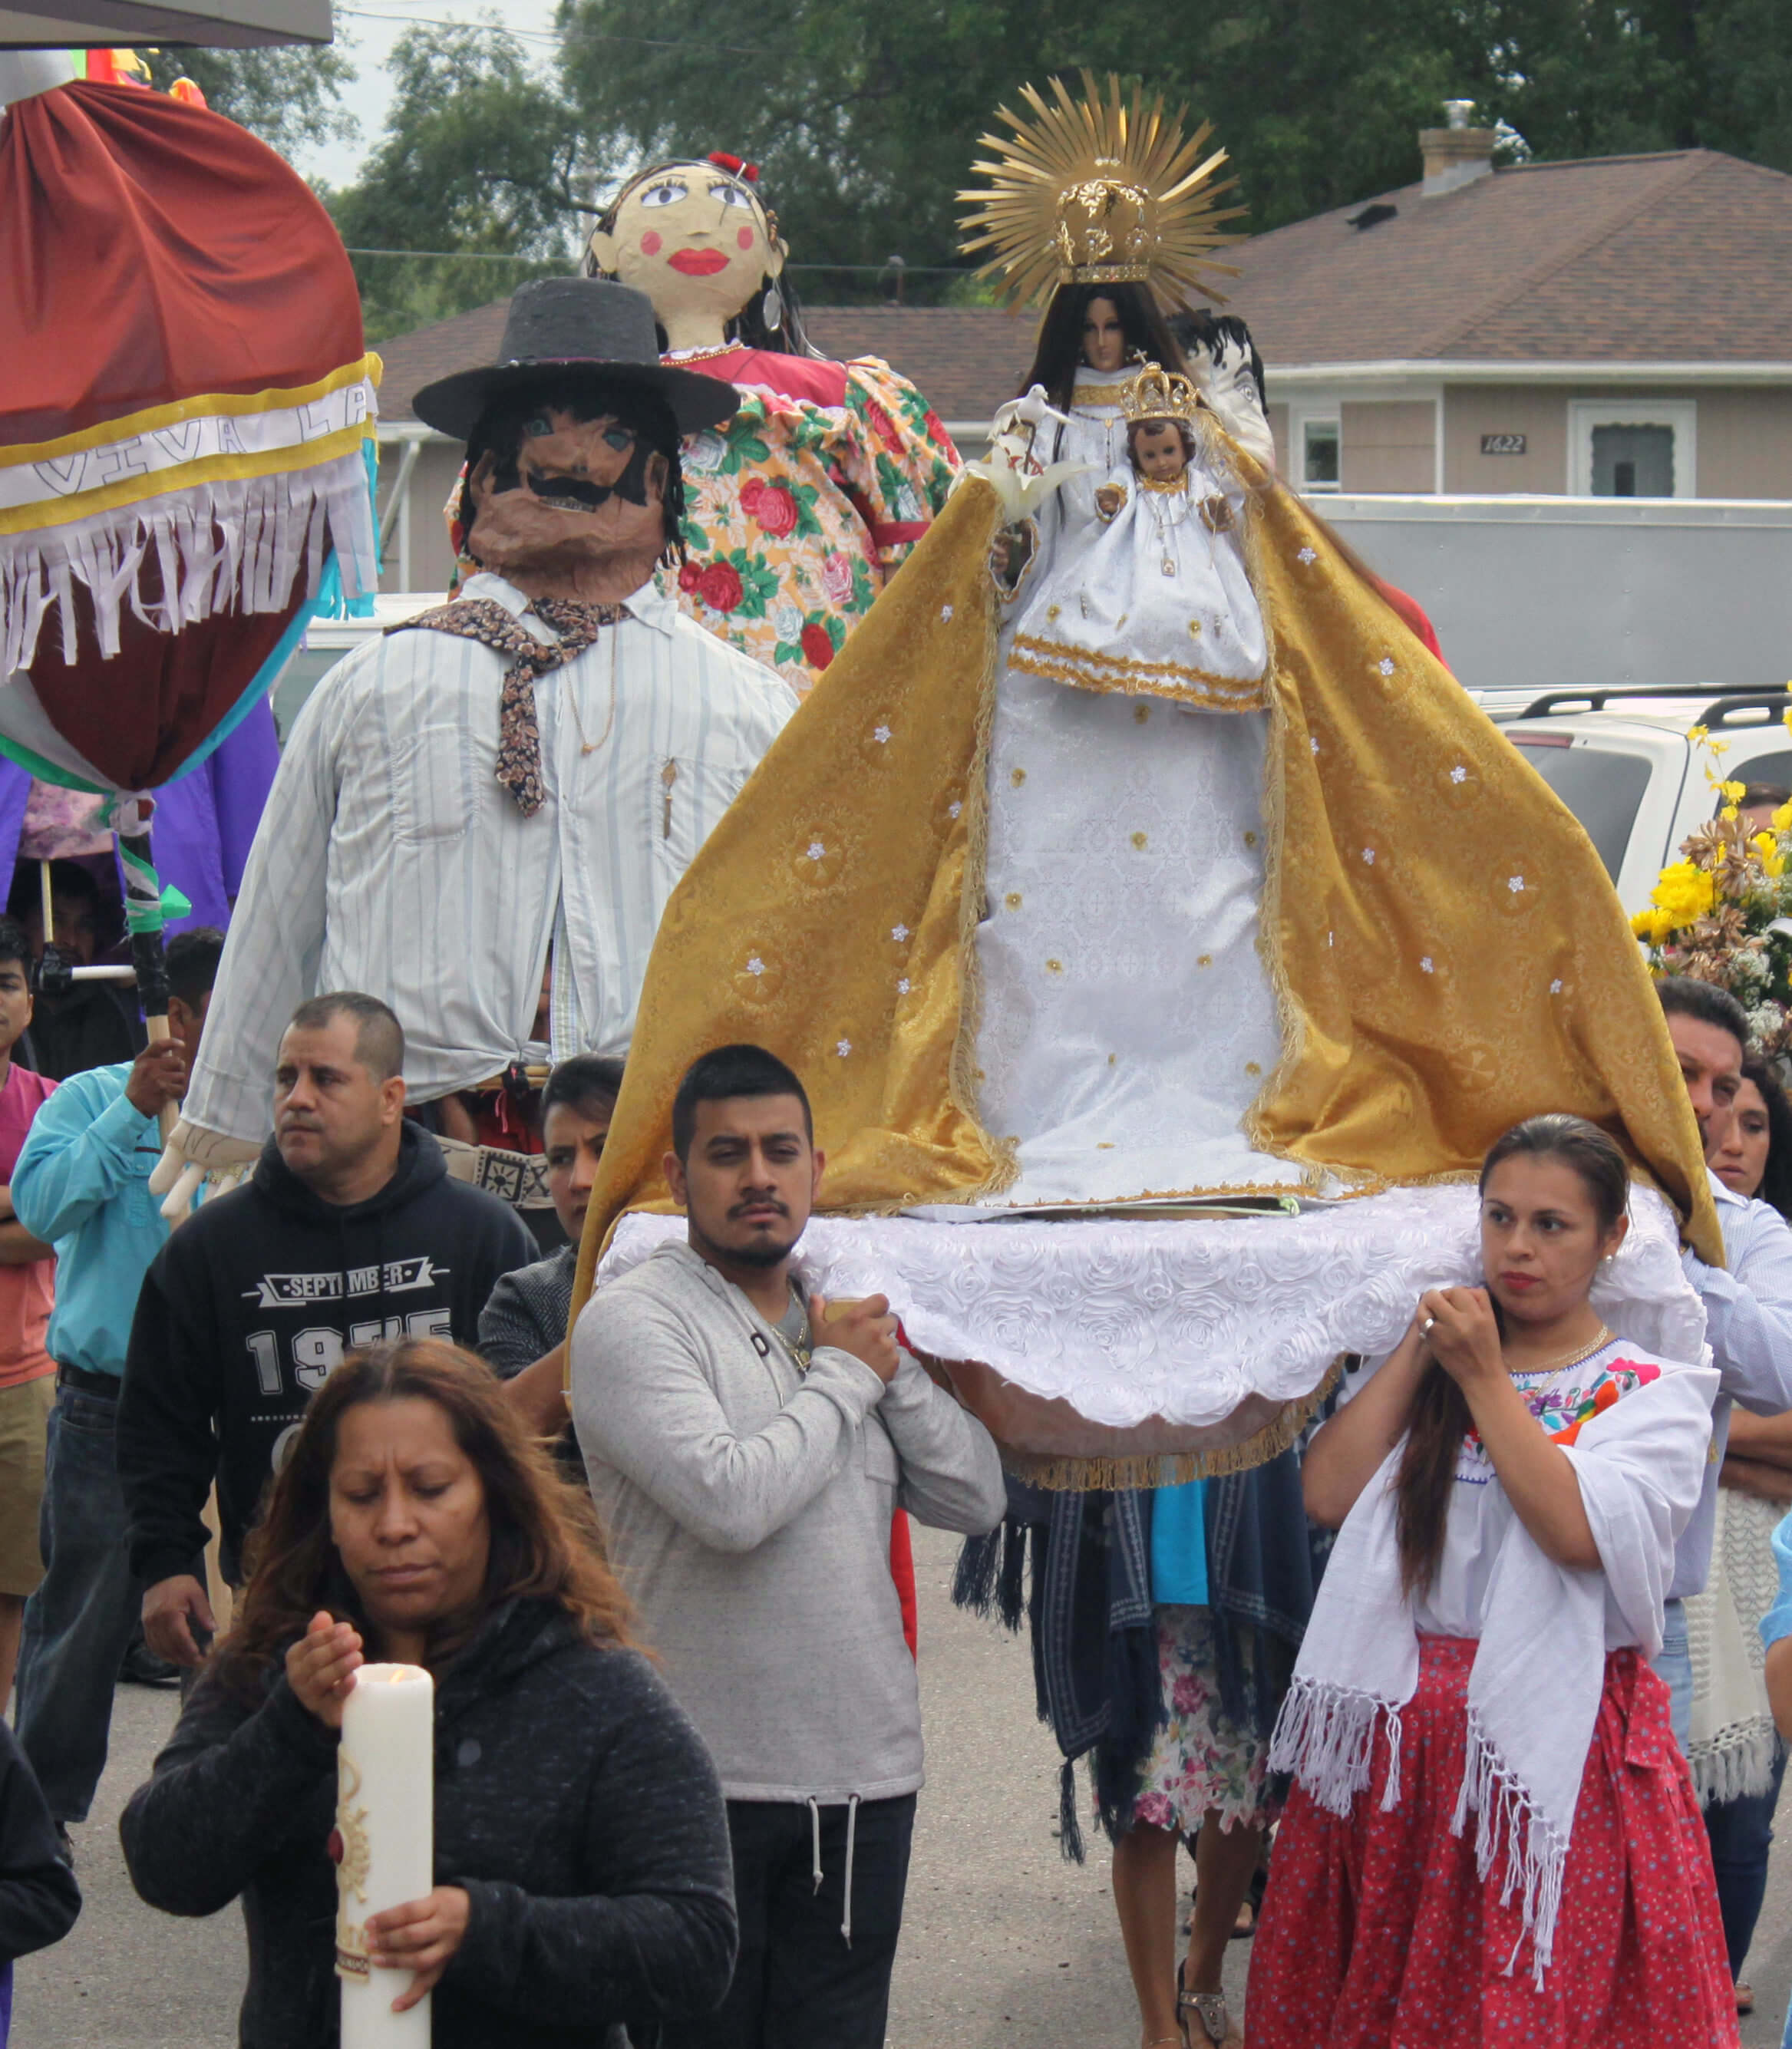 a crowd of hispanic catholics carry a statue of the virgin mary in a procession to mark the nativity of her birth outside holy name of jesus parish in wyoming, michigan